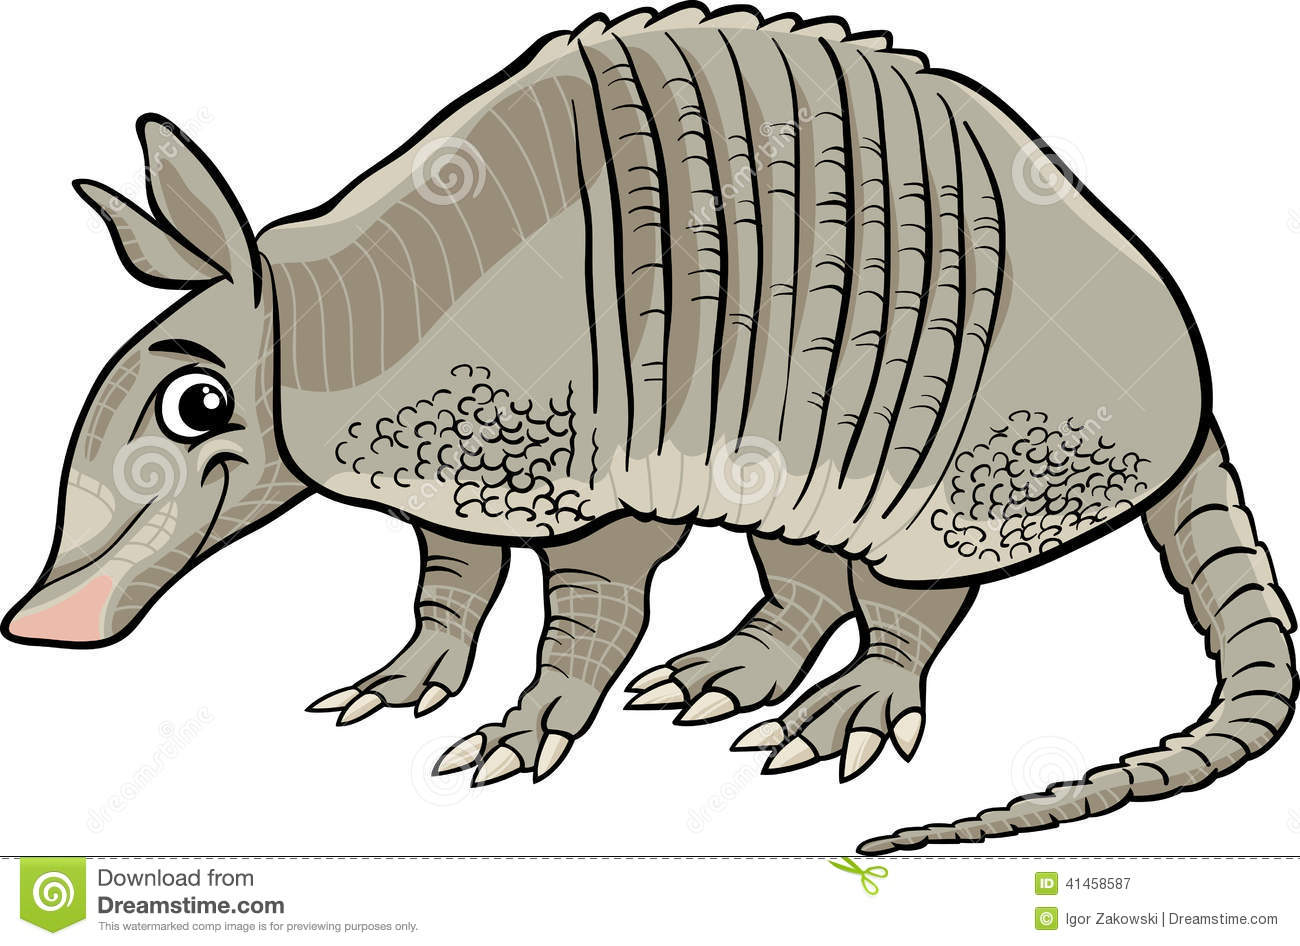 Armadillo clipart #11, Download drawings